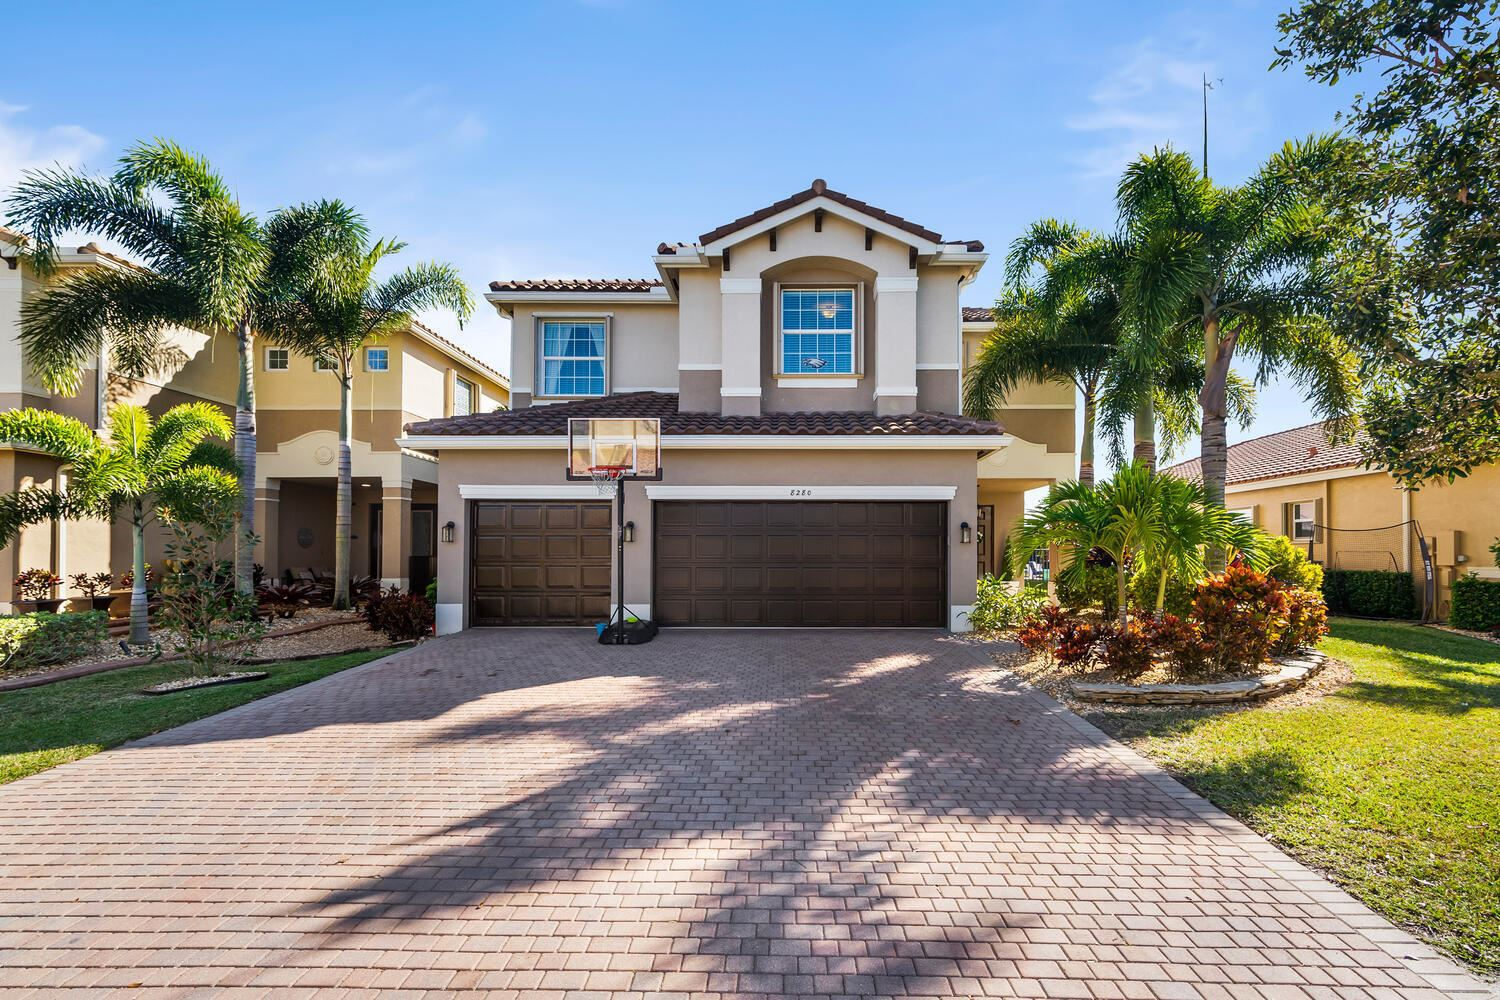 8280 Savara Streams Lane, Boynton Beach, FL 33473 - #: RX-10687192